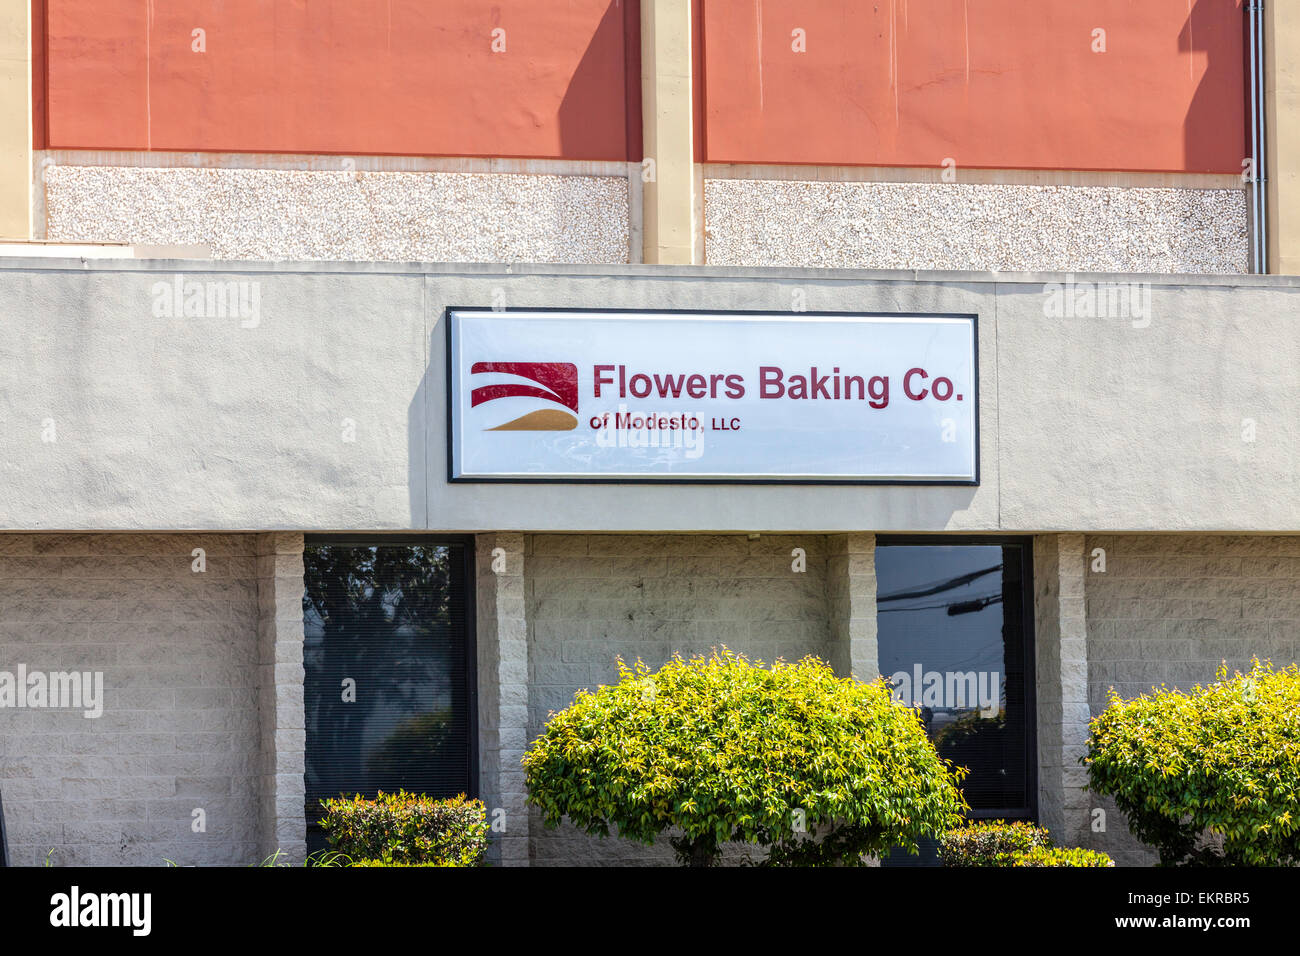 Flowers Baking Company in Modesto California maker of Wonder bread, Nature Own, Tastykake and other brands - Stock Image